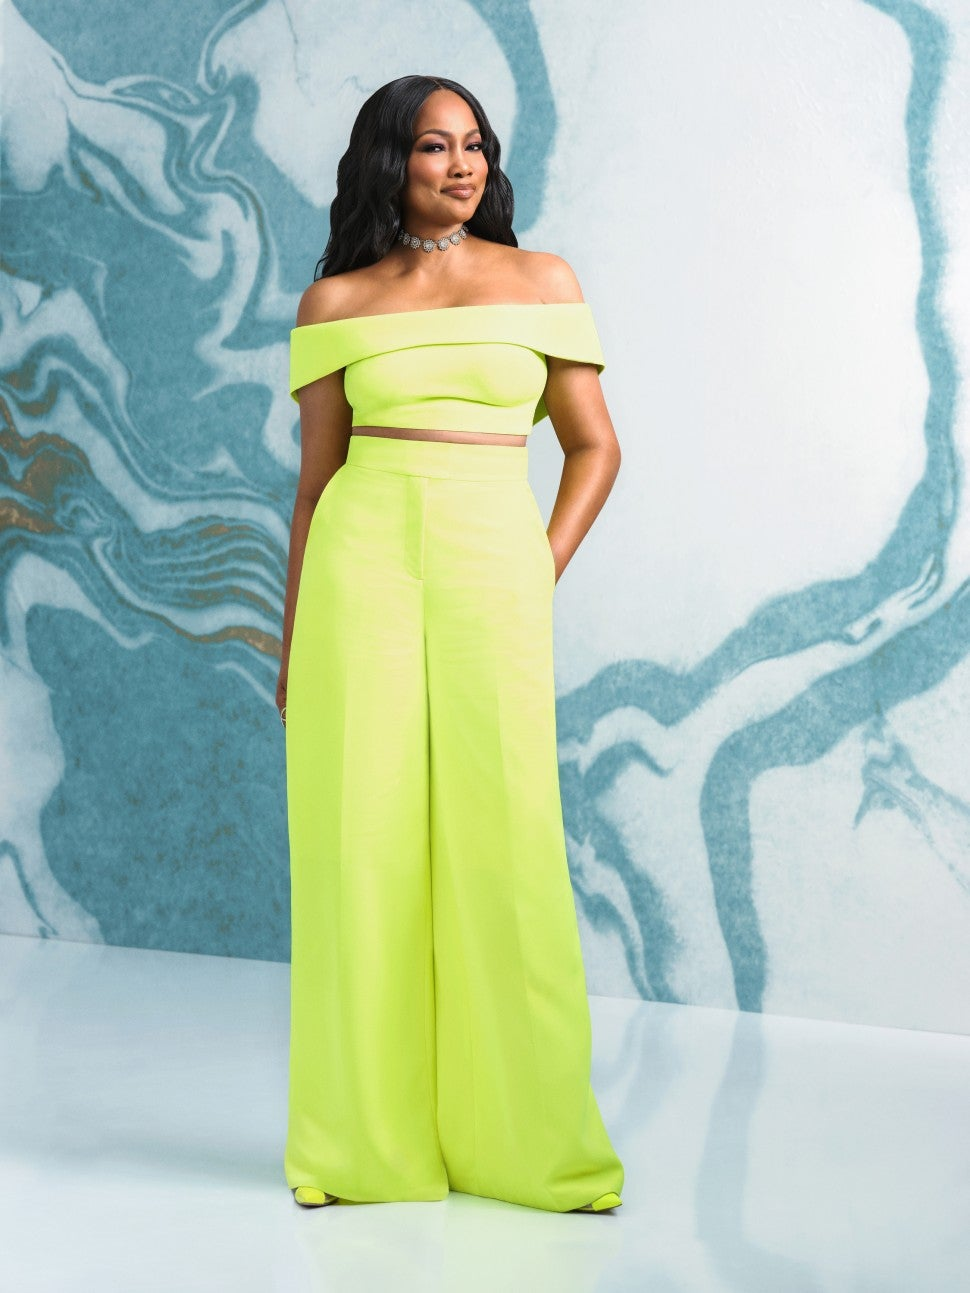 Garcelle Beauvais of Bravo's 'The Real Housewives of Beverly Hills'